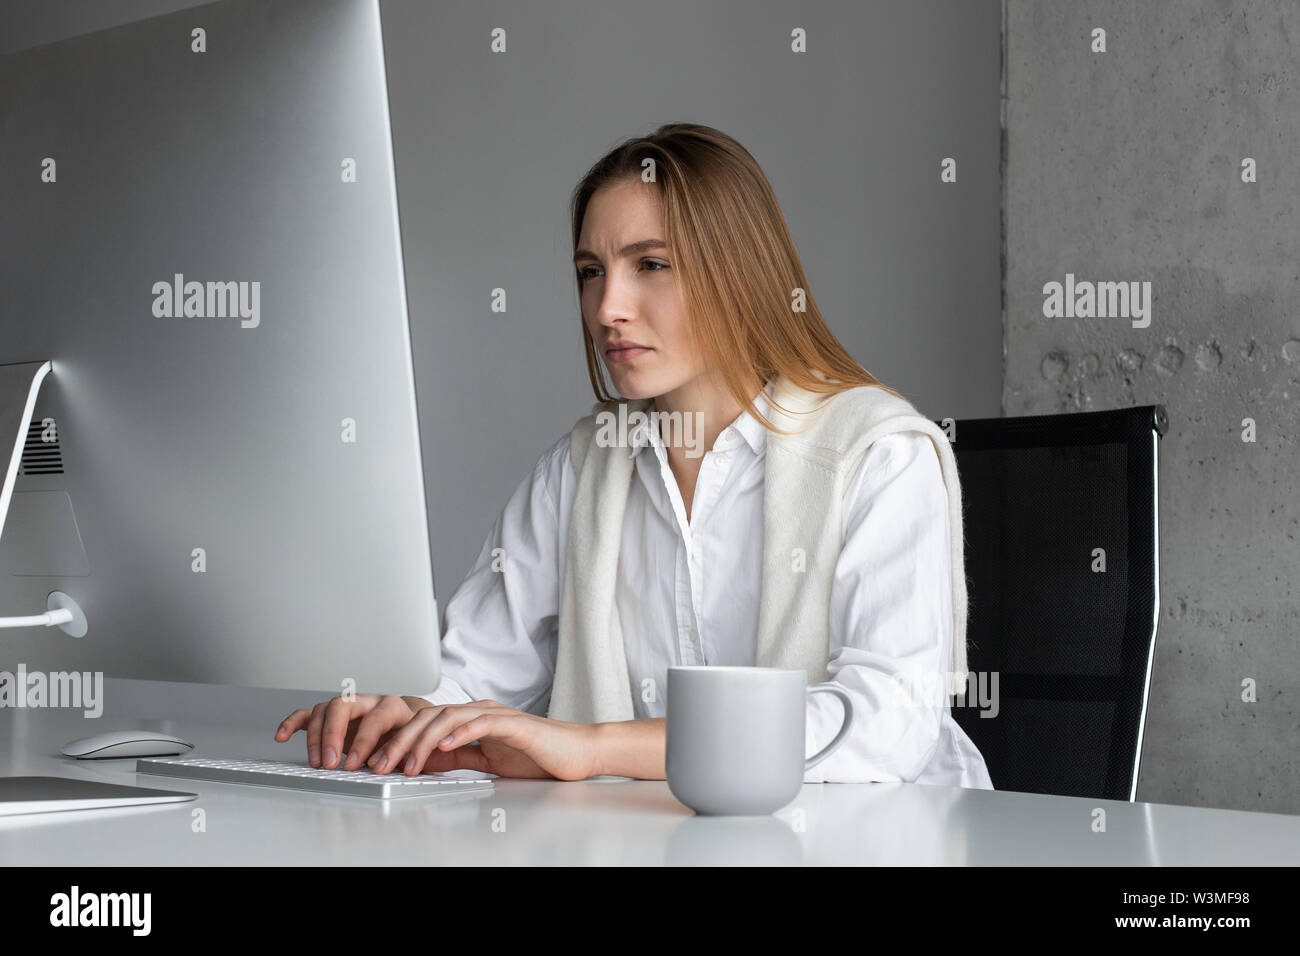 Businesswoman concentrating while working at computer - Stock Image